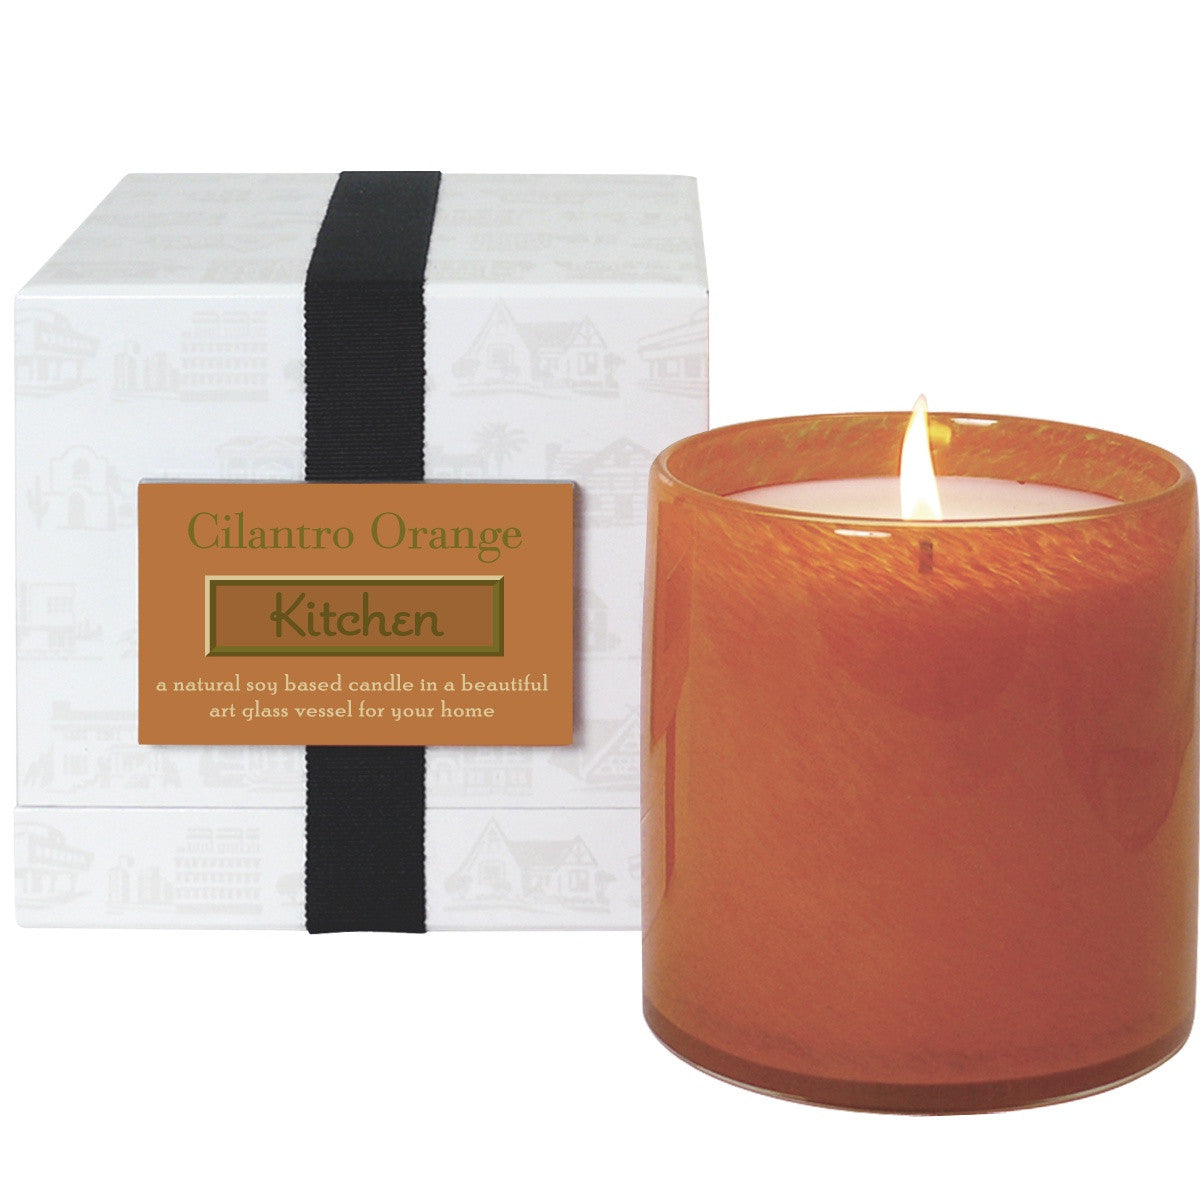 Cilantro Orange Kitchen Candle